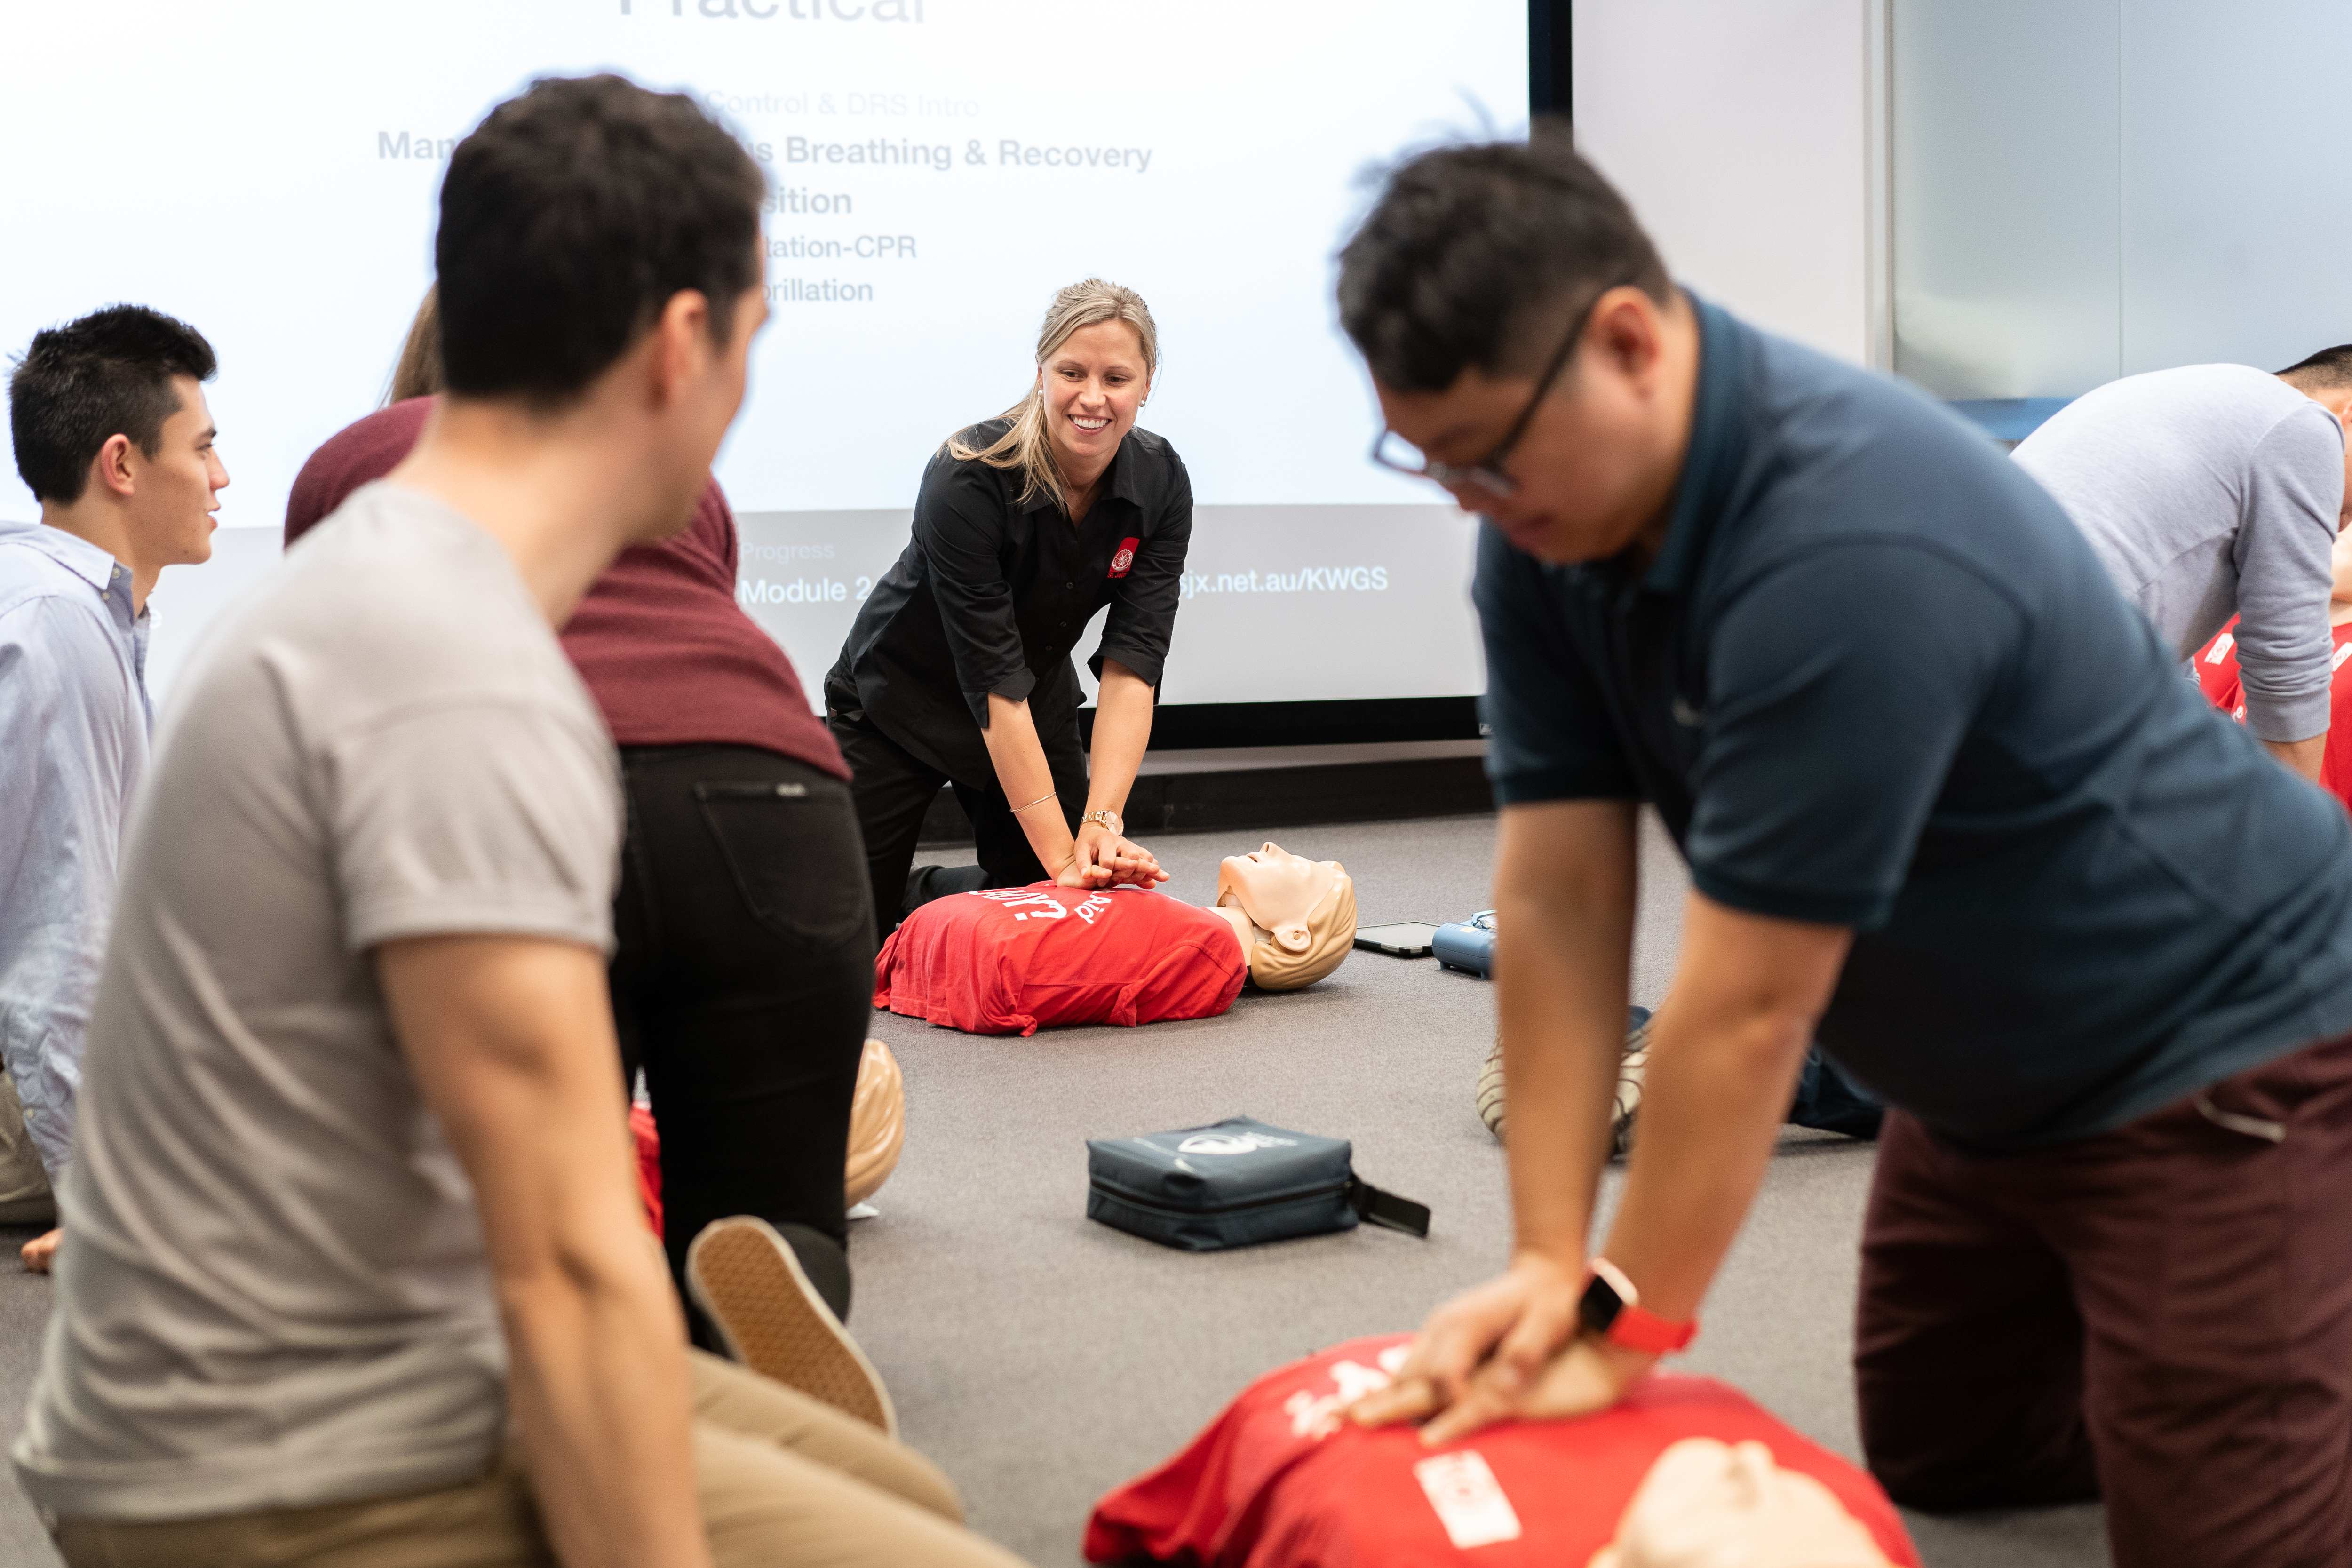 2 Hour CPR course